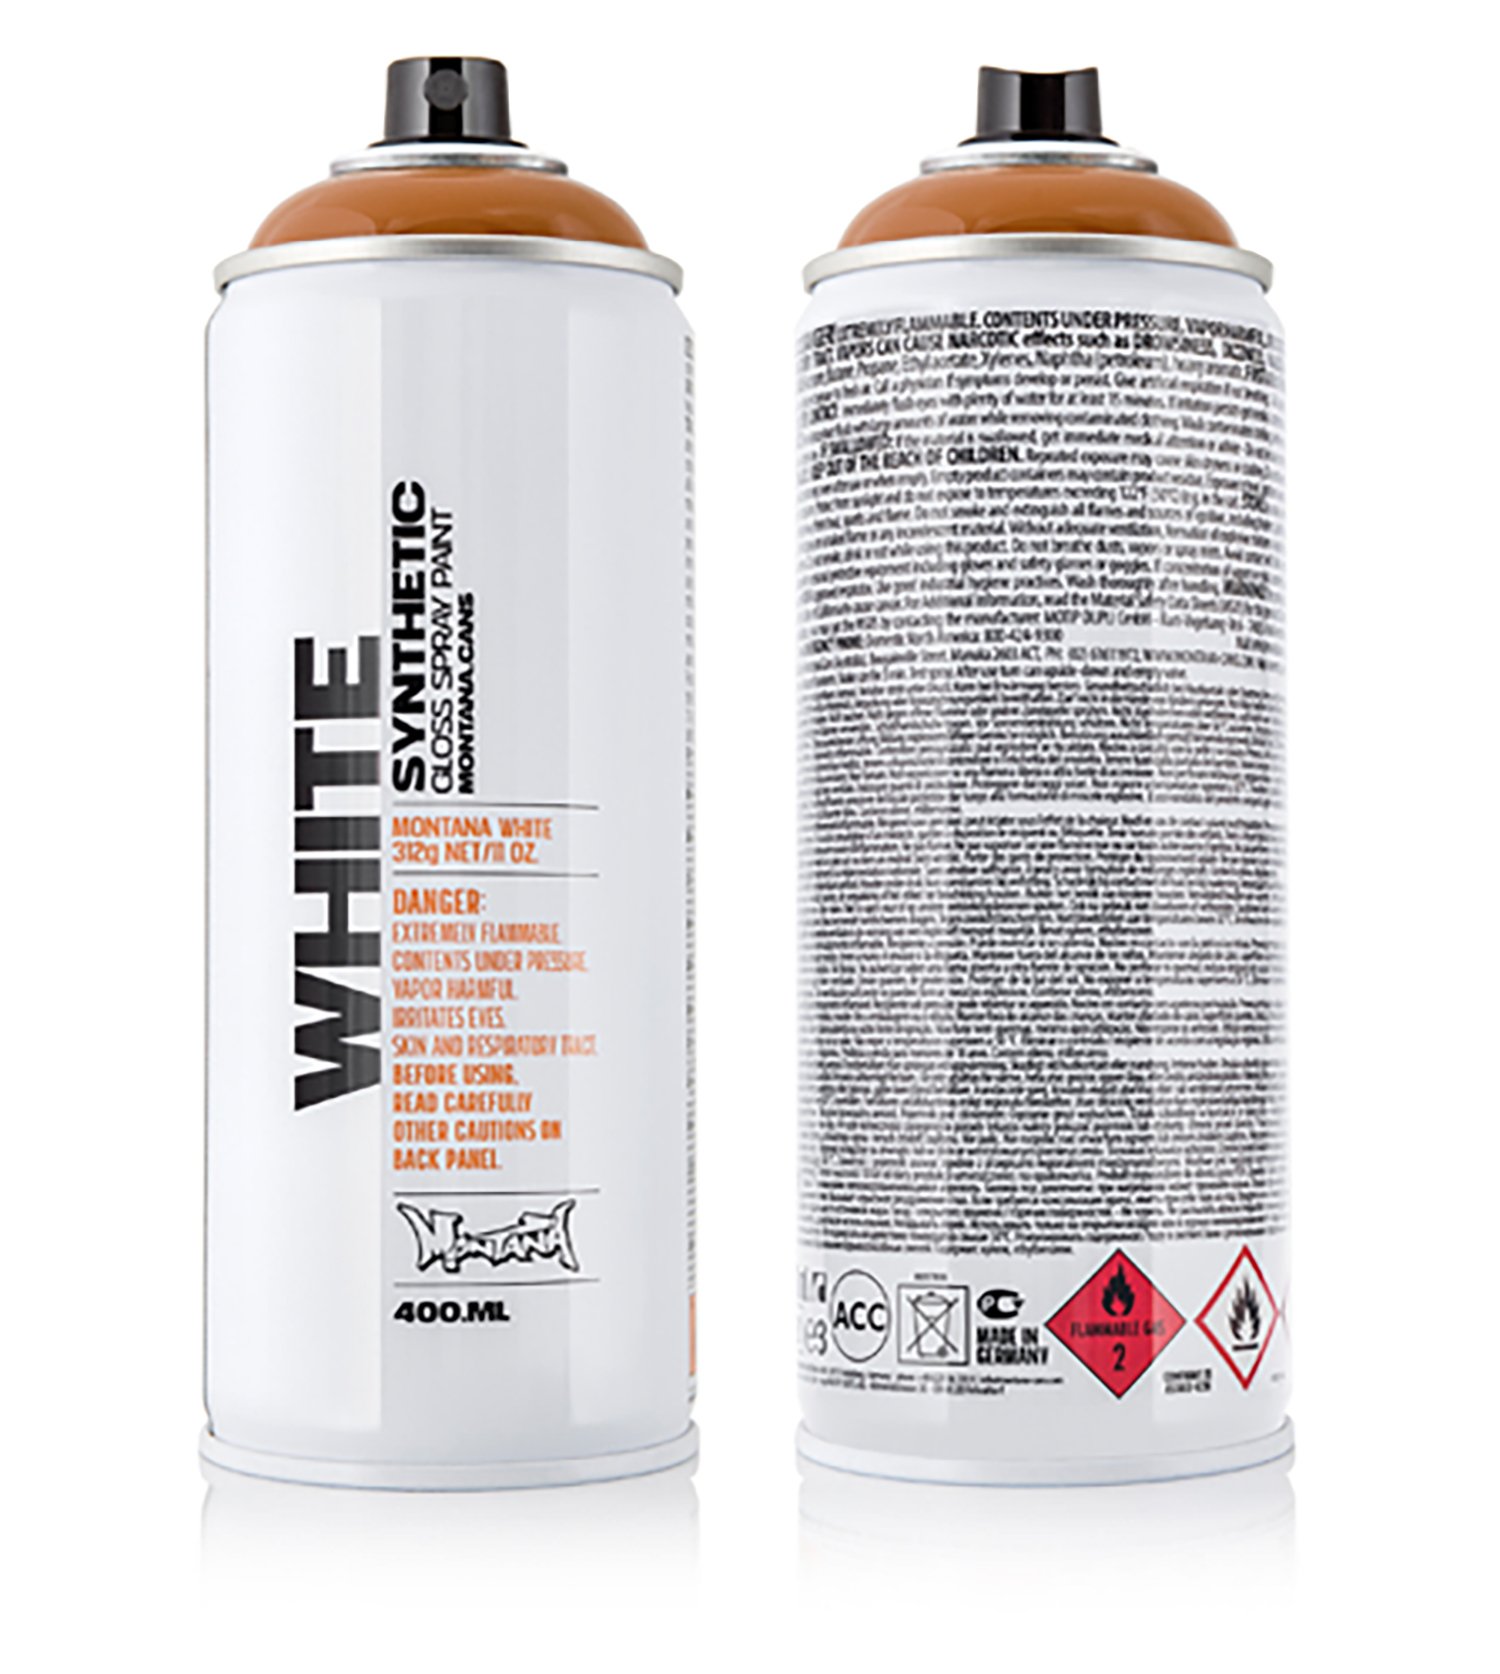 MONTANA-WHITE-SPRAY-400ML-8050